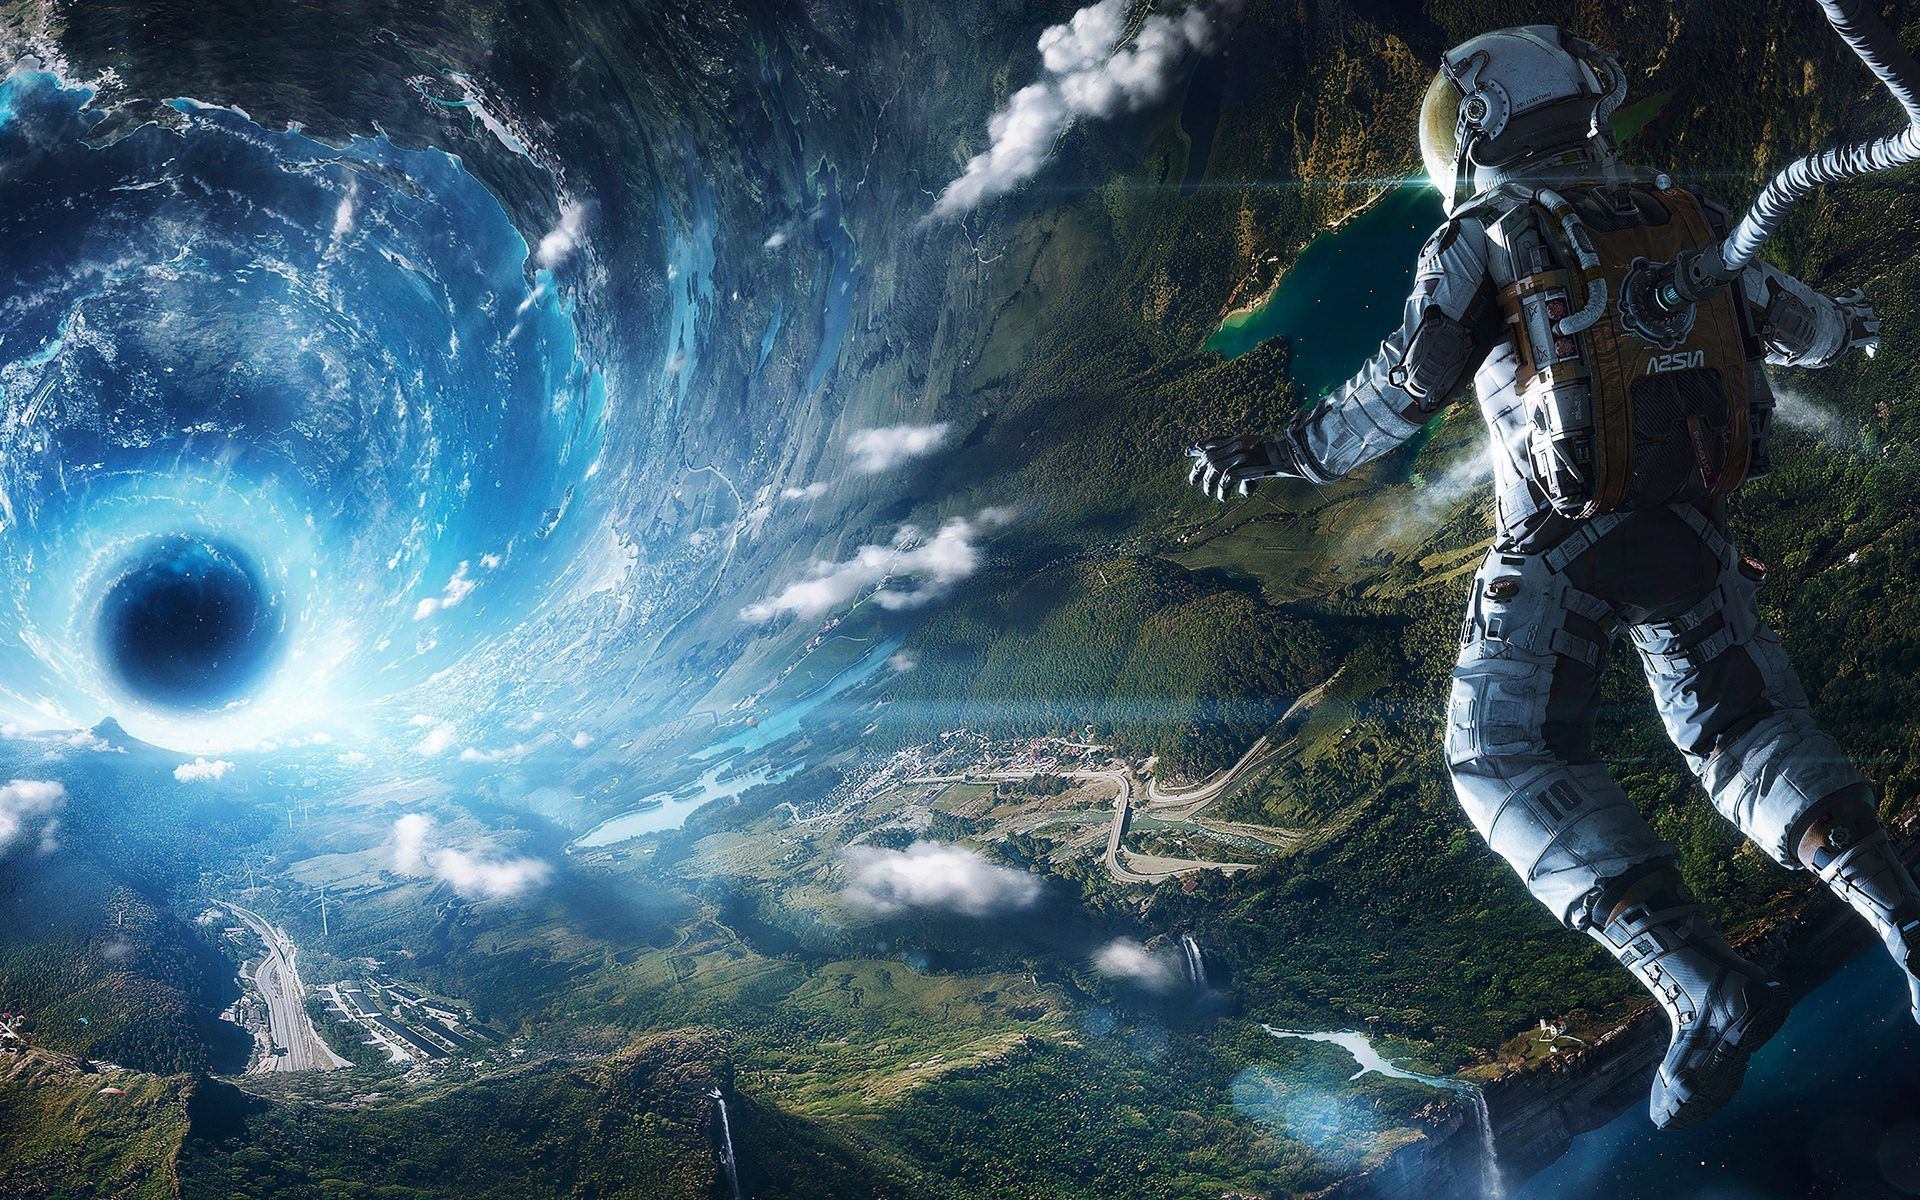 Free Surreal Astronaut Wallpaper For Android Wallpaper Space Astronaut Wallpaper Space Art